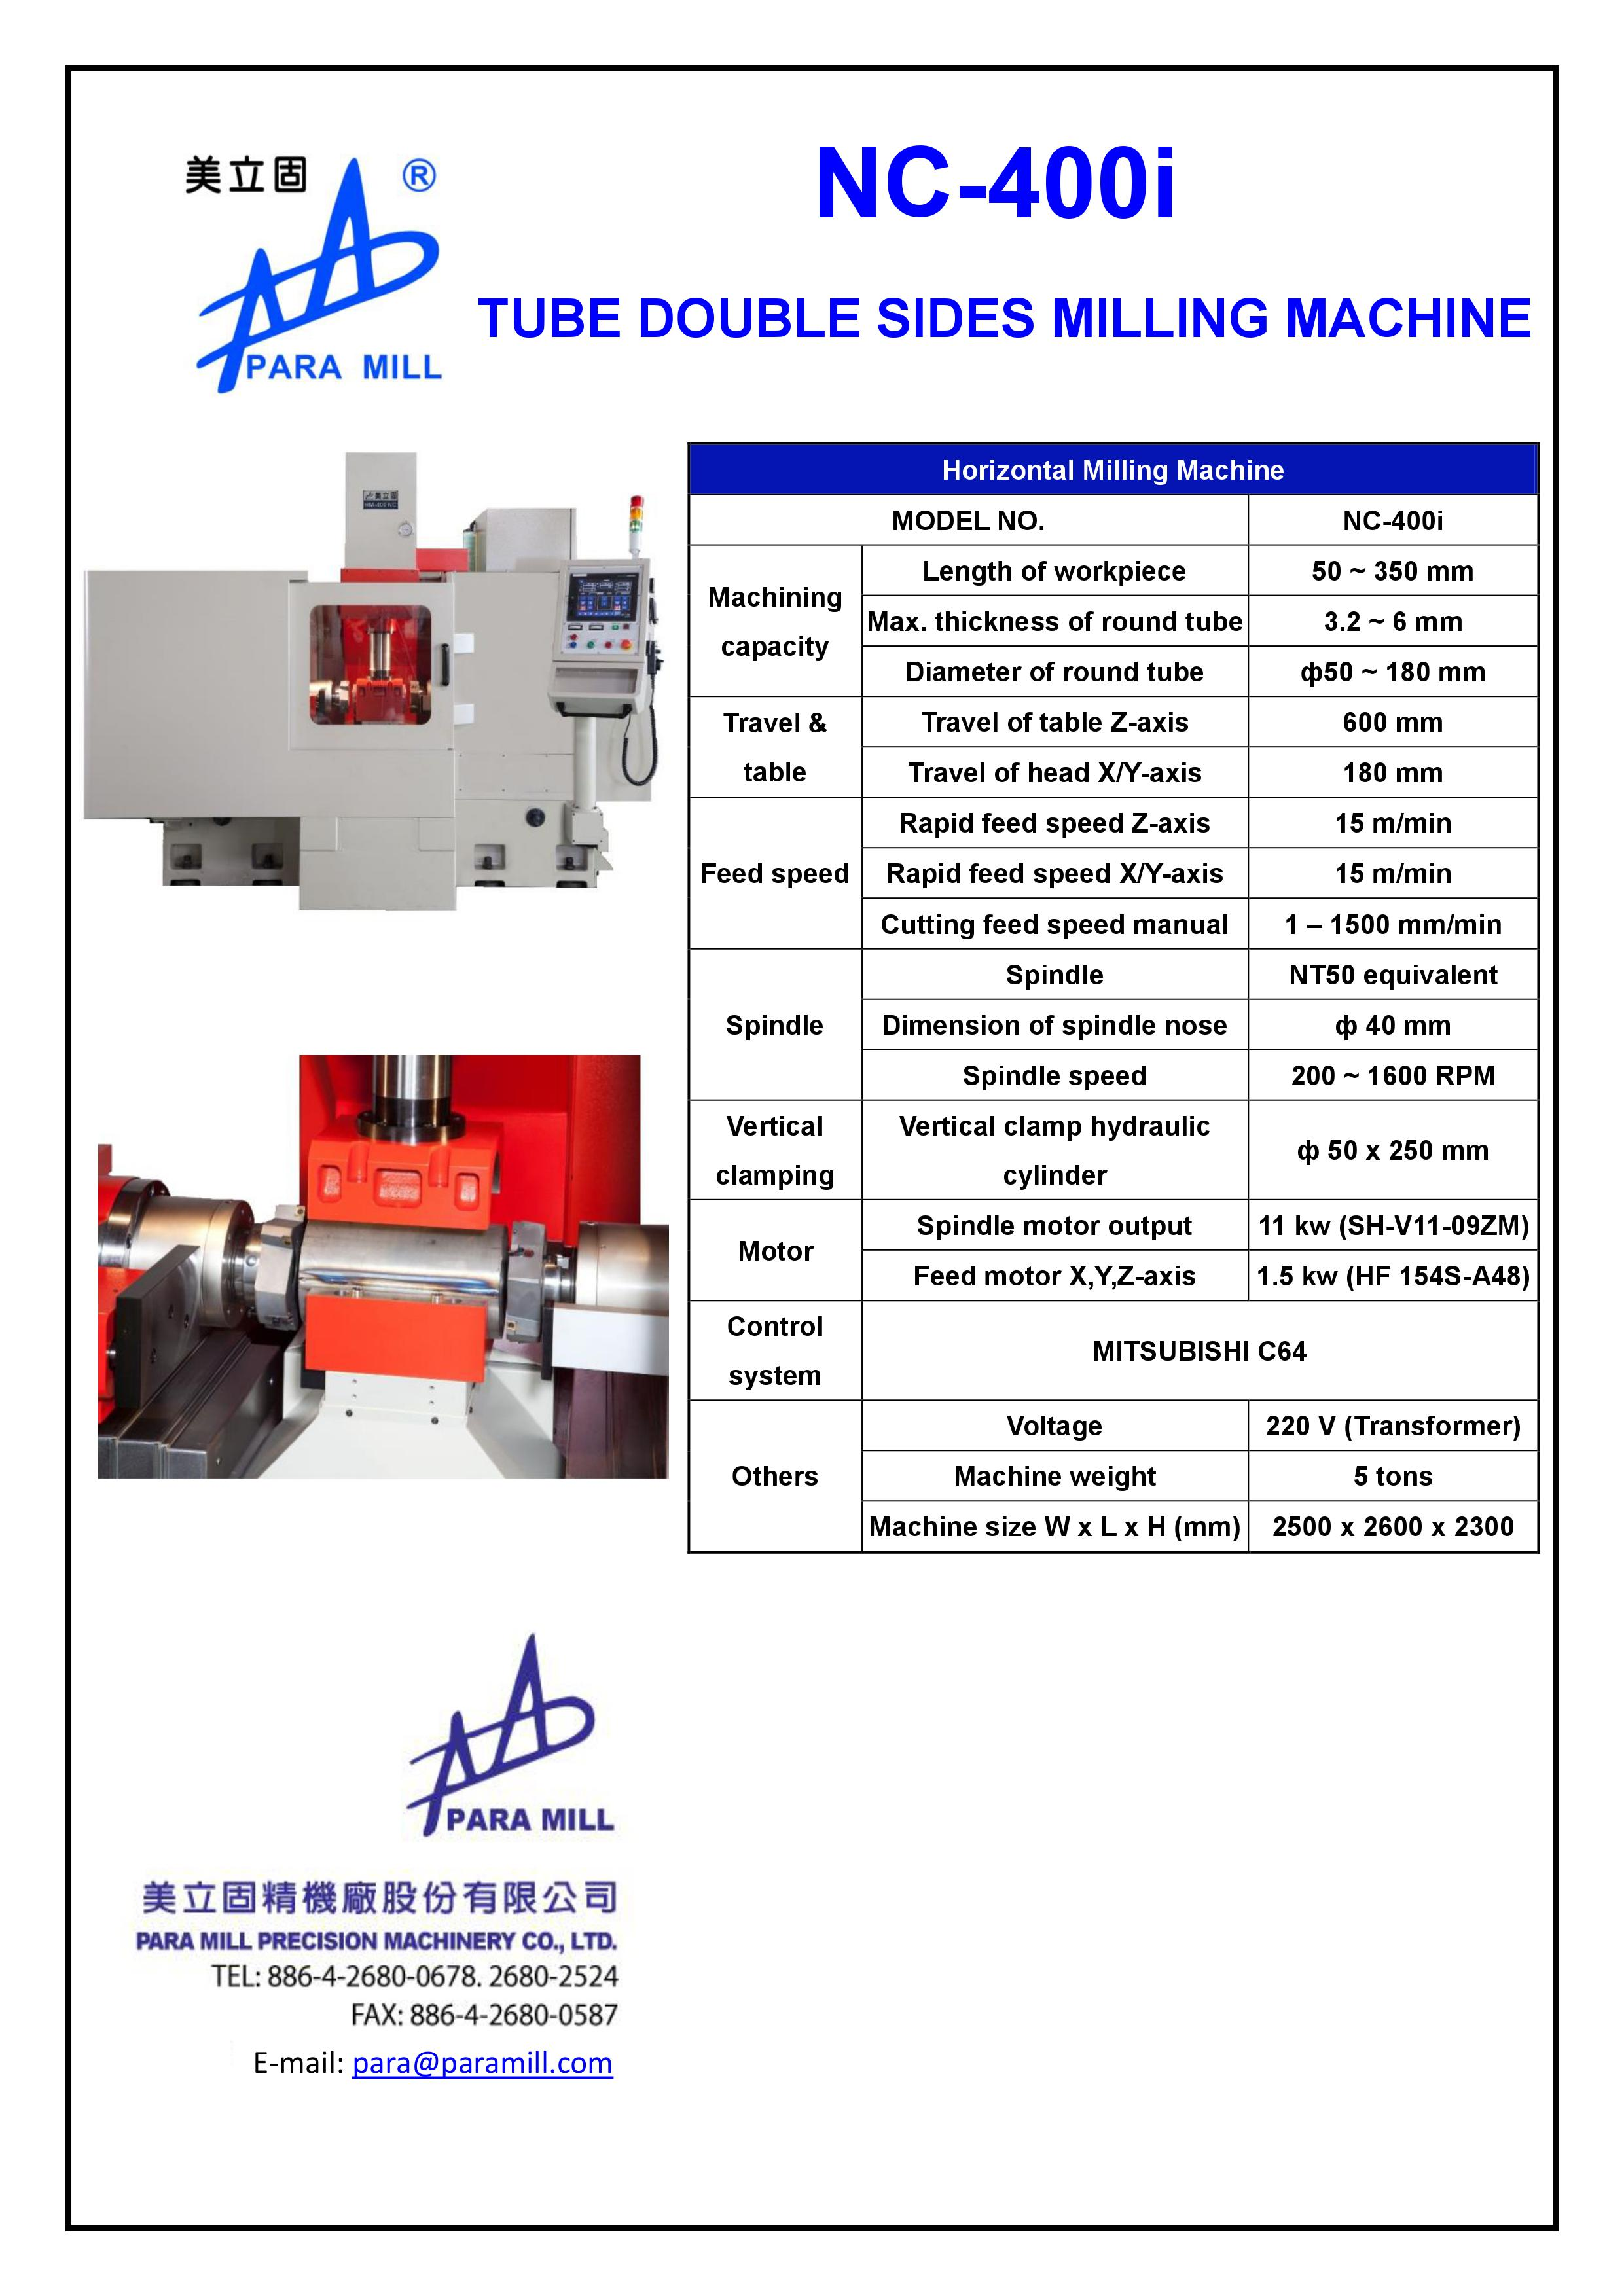 TUBE DOUBLE SIDES MILLING MACHINE